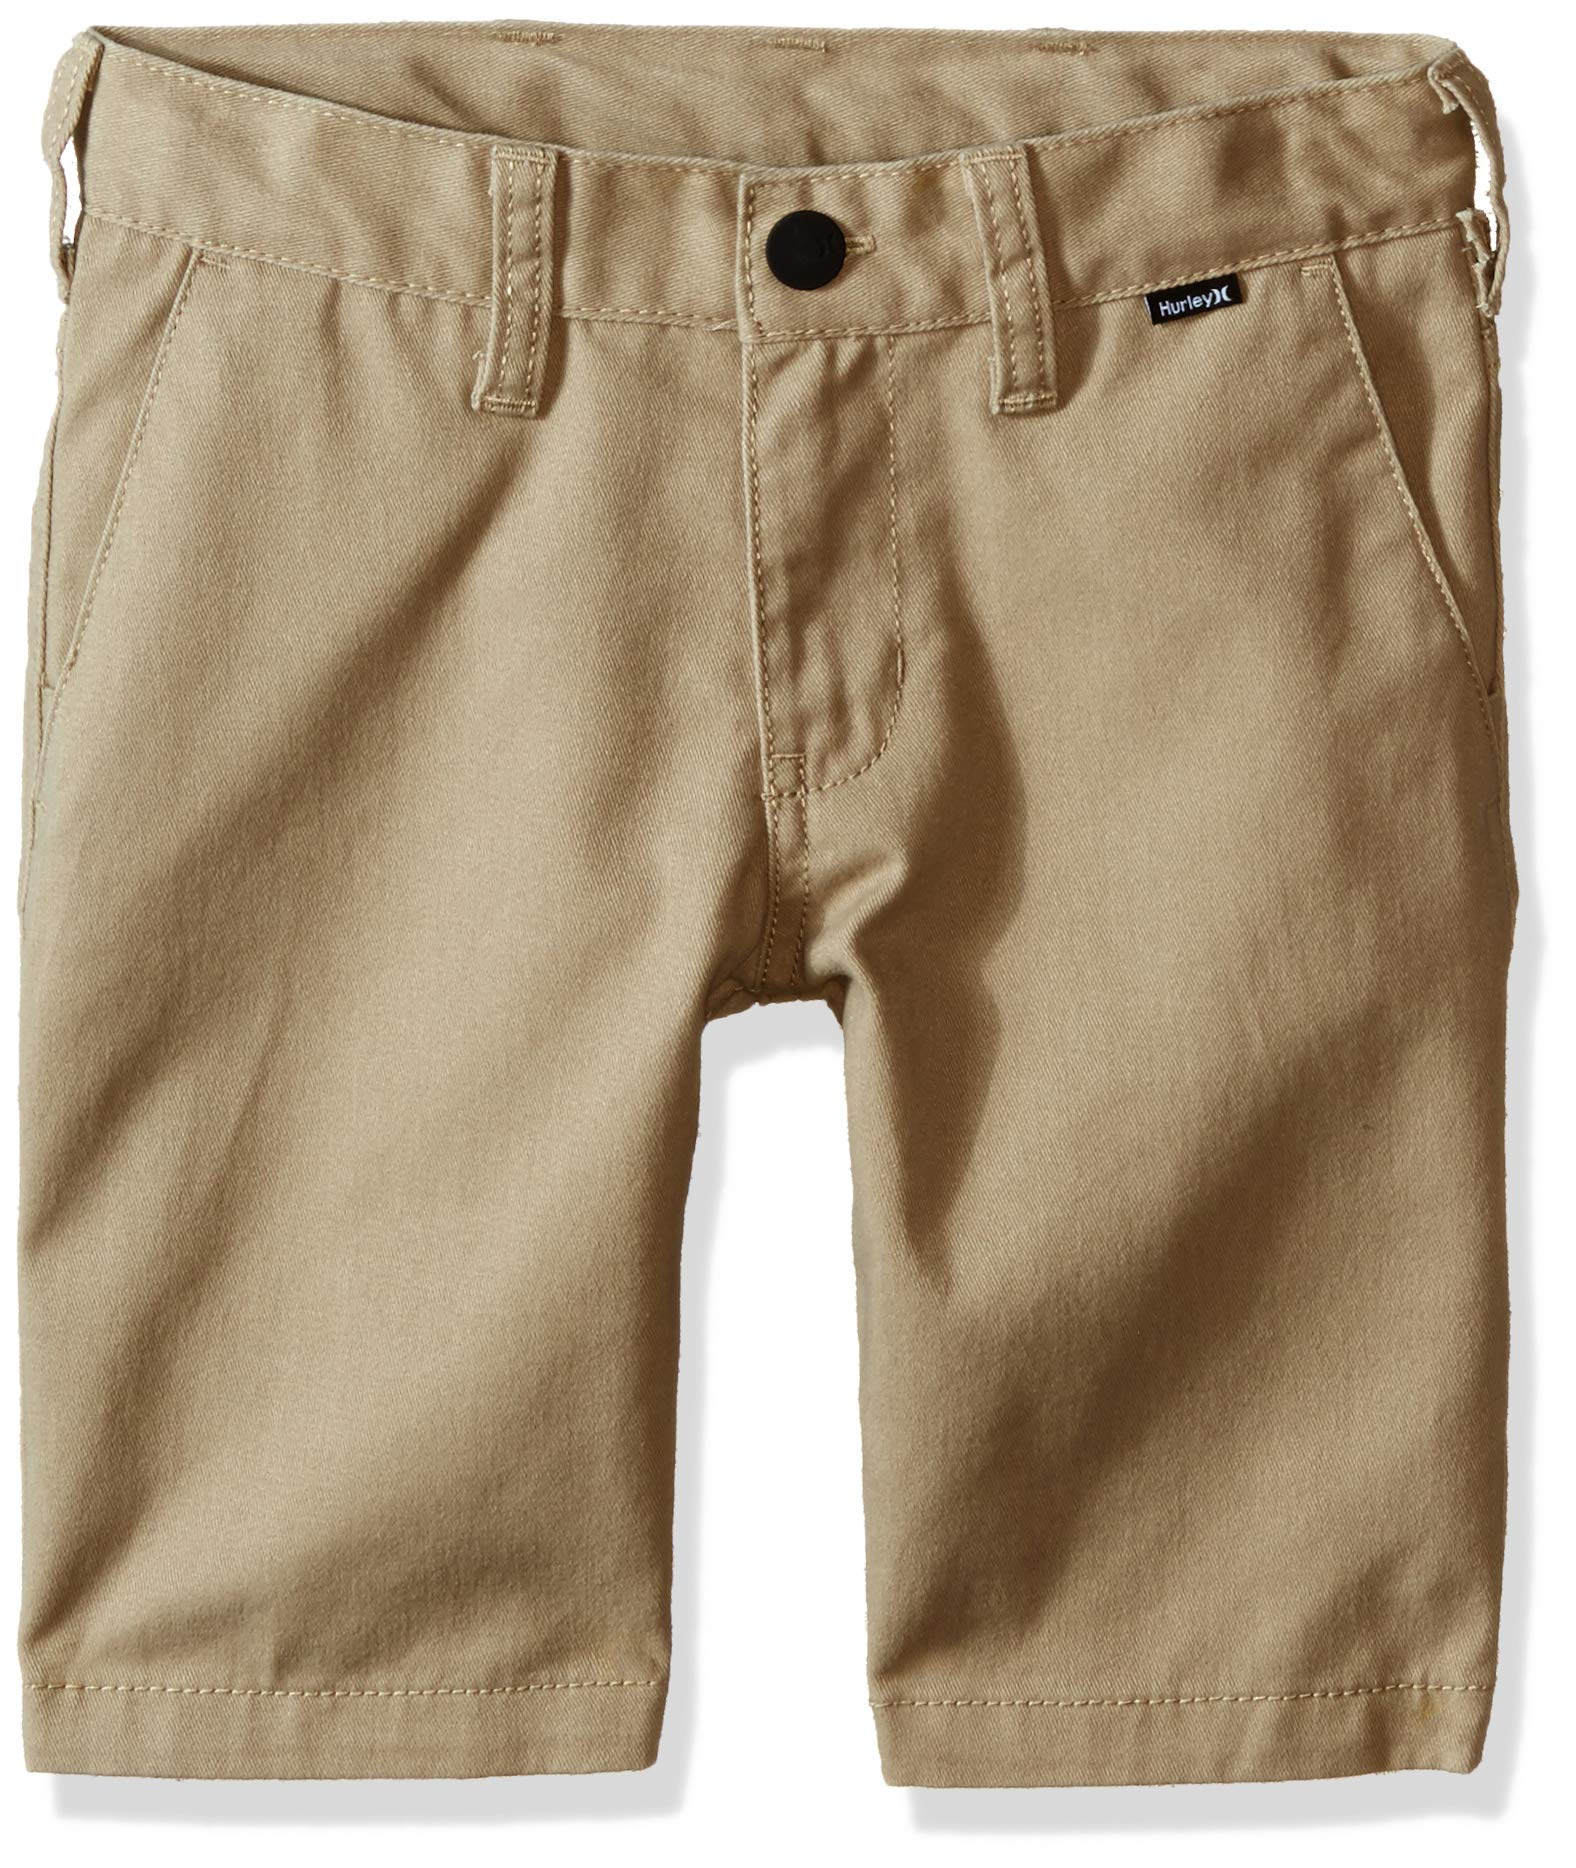 Hurley Boys' Little Walk Shorts, Khaki, 6